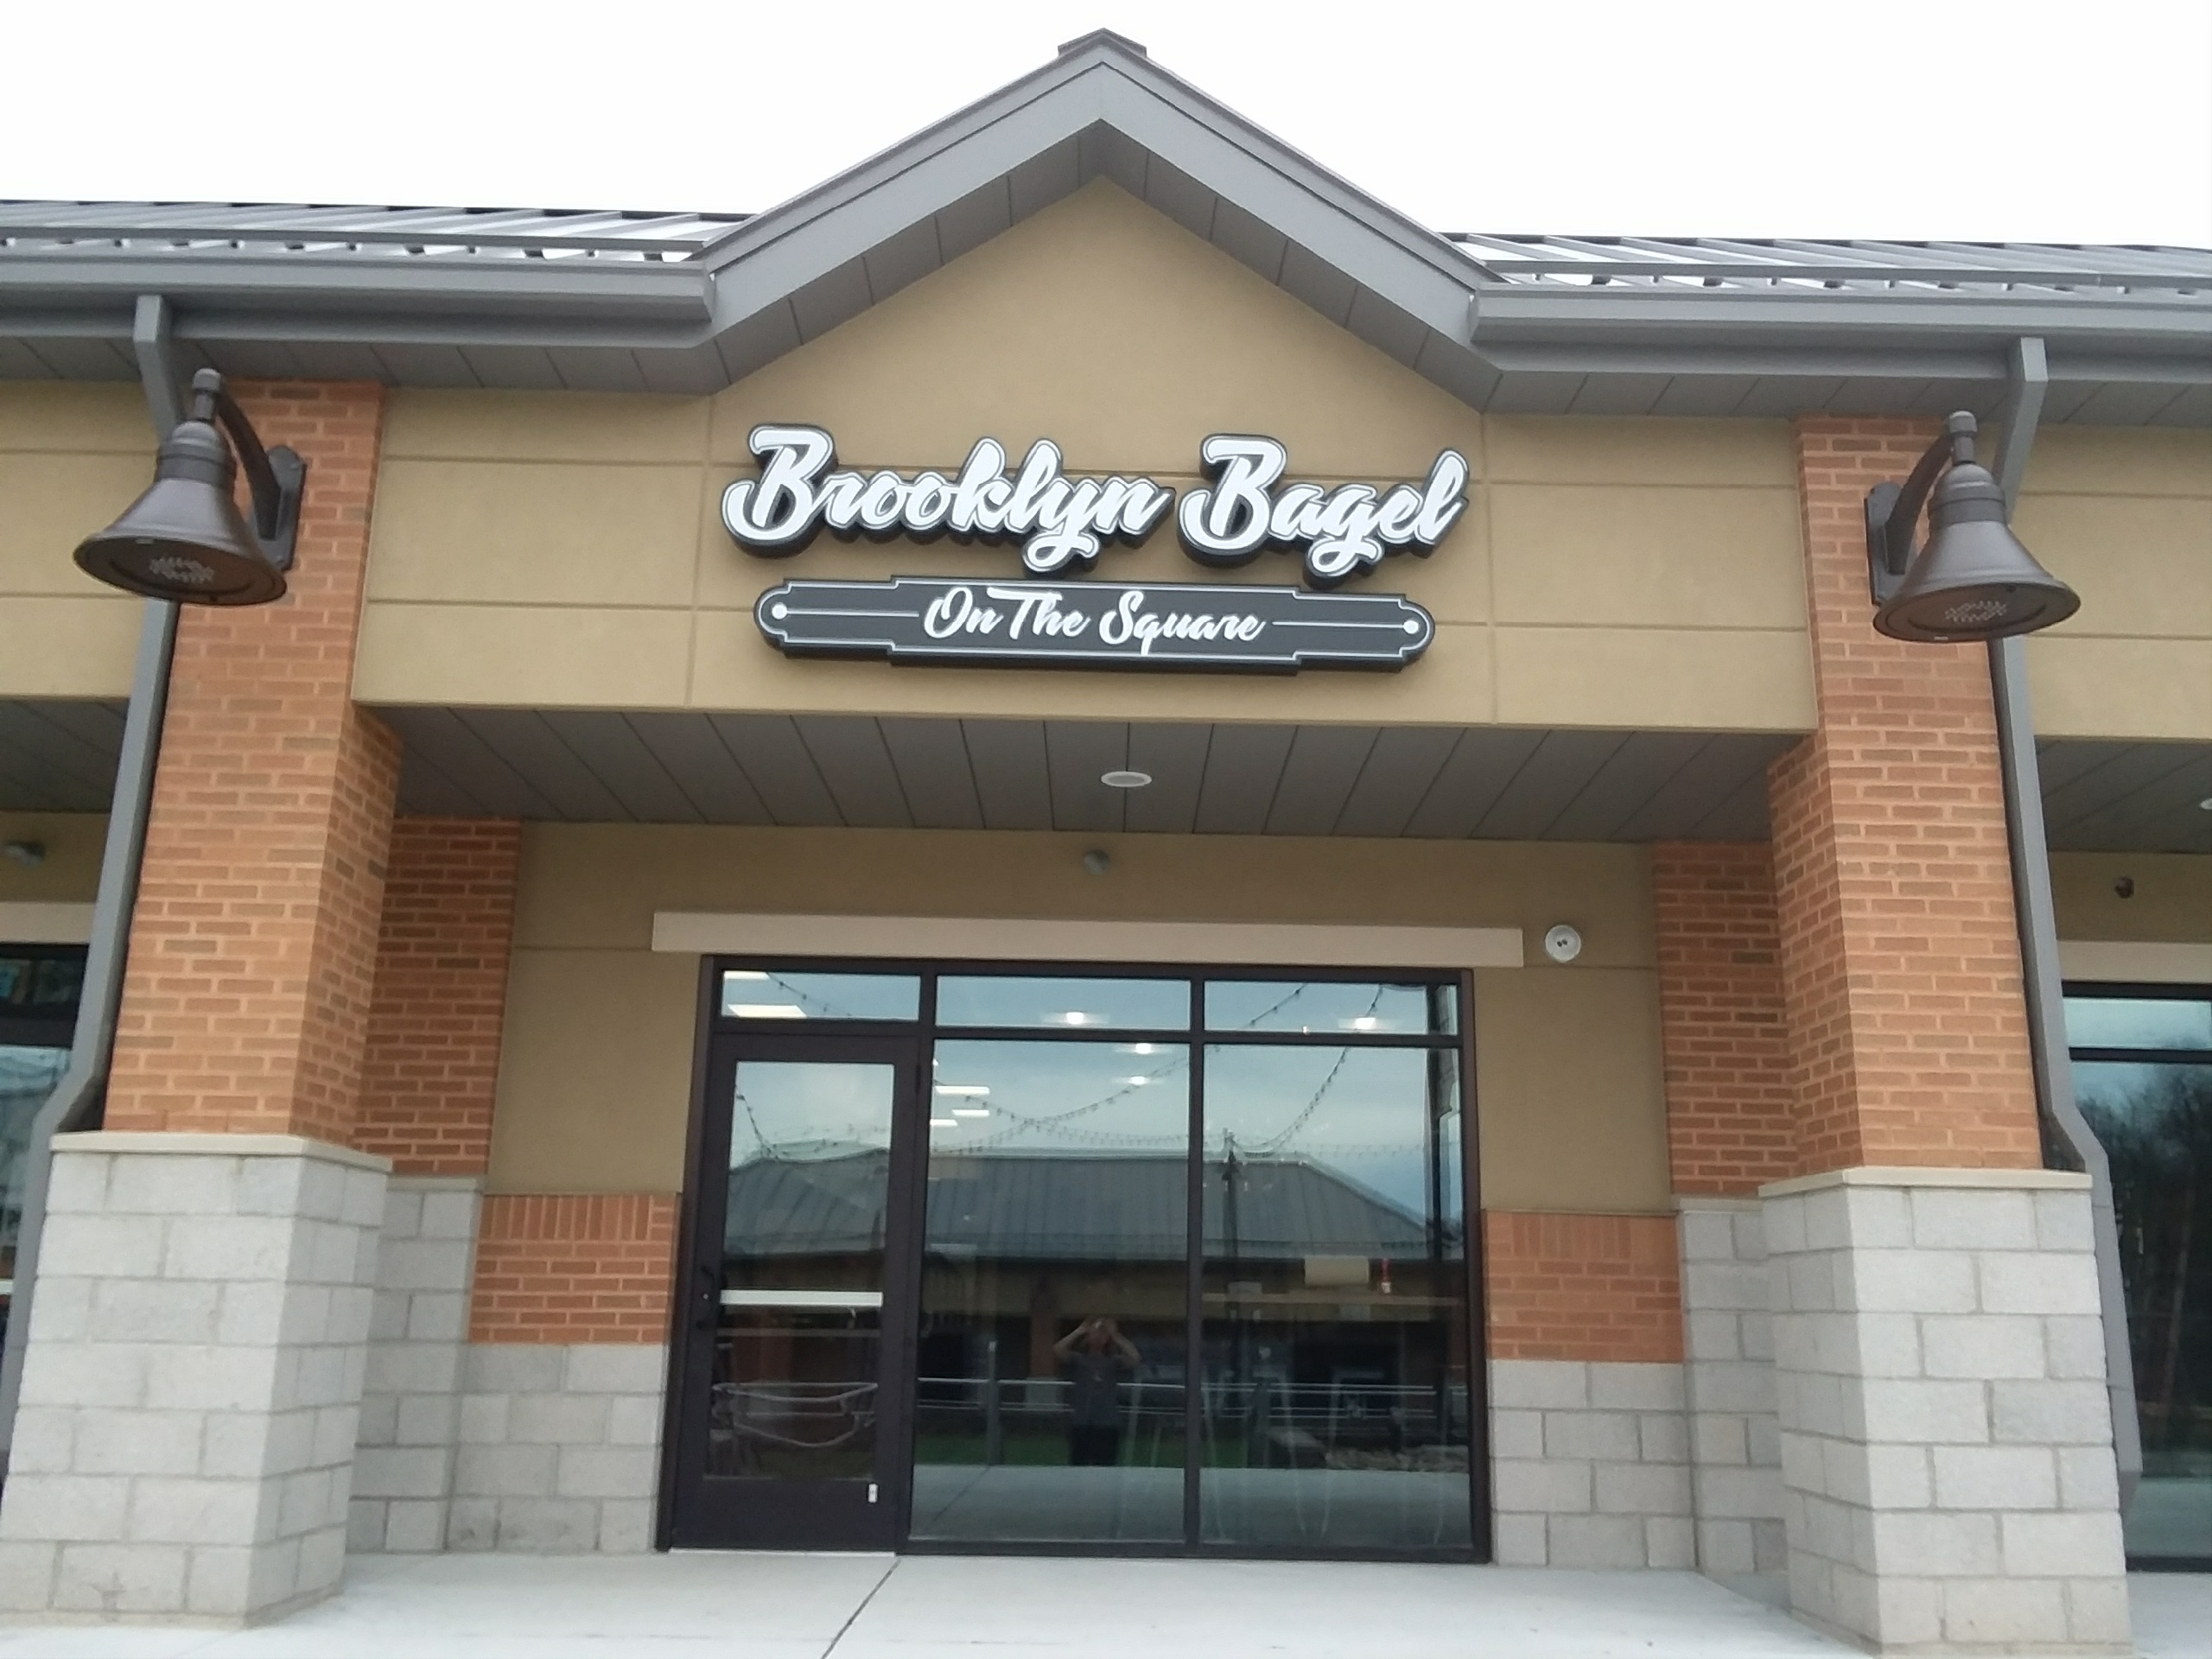 new bagel shop brooklyn bagel a local run family business the troubadour online. Black Bedroom Furniture Sets. Home Design Ideas